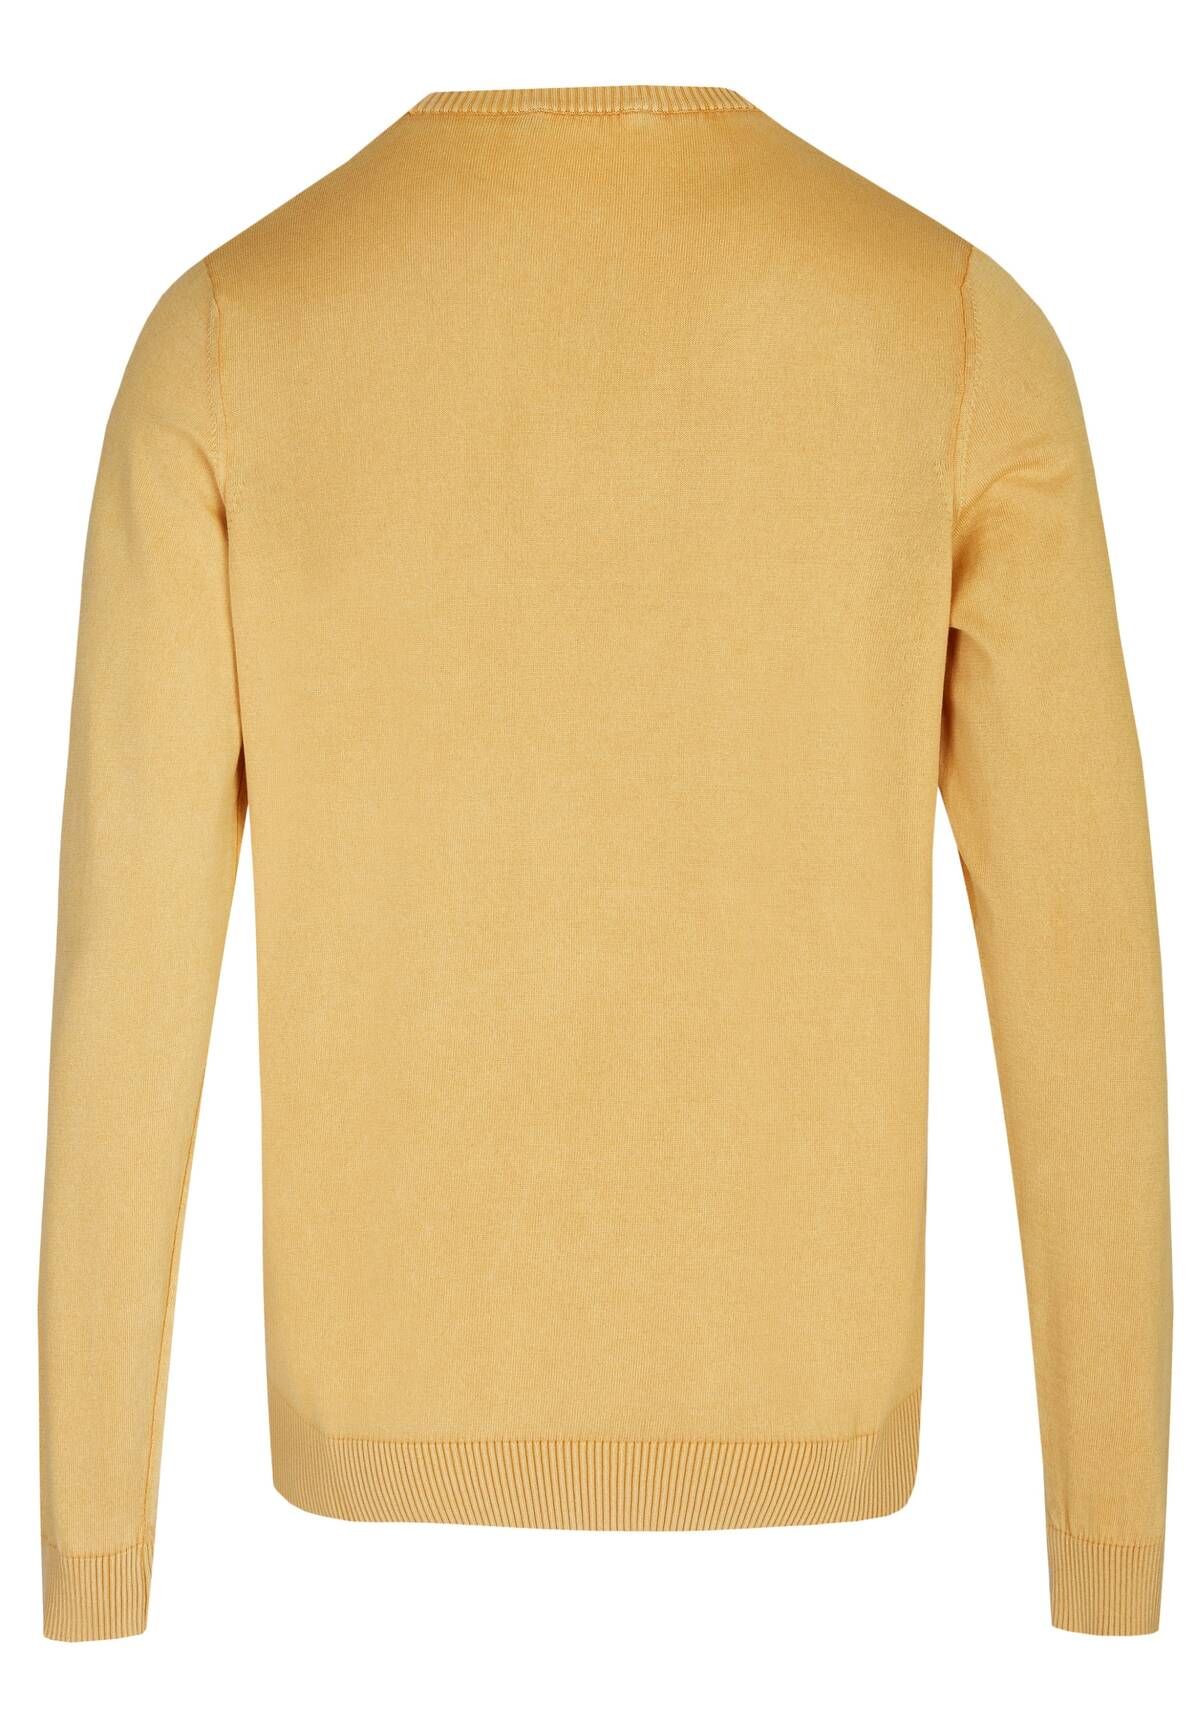 DH-ECO Pullover MODERN FIT / KNIT CREWNECK